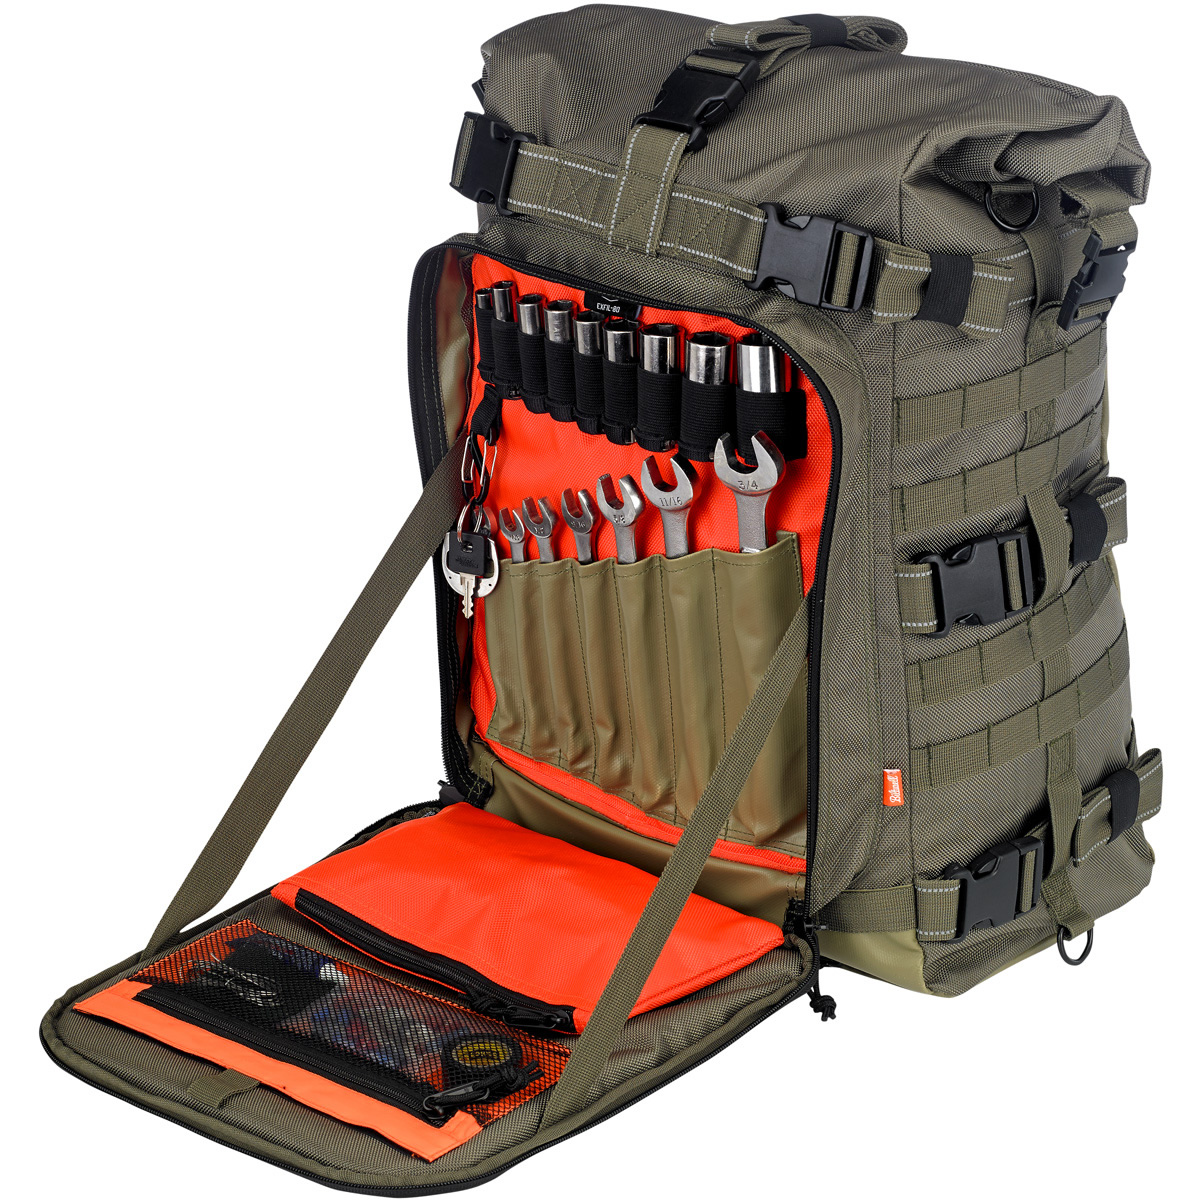 This moto ruck is built for the adventurer in mind. The 3 strap mounting system offers a lot of various methods to lash this beast to a plethora of sissy bars and luggage rack. D-rings towards the base offer even more options for securing this hearty load. A handy tool compartment that is not obstructed by the strapping system doubles as a back rest with a built in pad on the exterior panel of the compartment. To top it off, a waterproof liner is included in a semi-hidden lower compartment for when things get wet. MSRP: $199.95